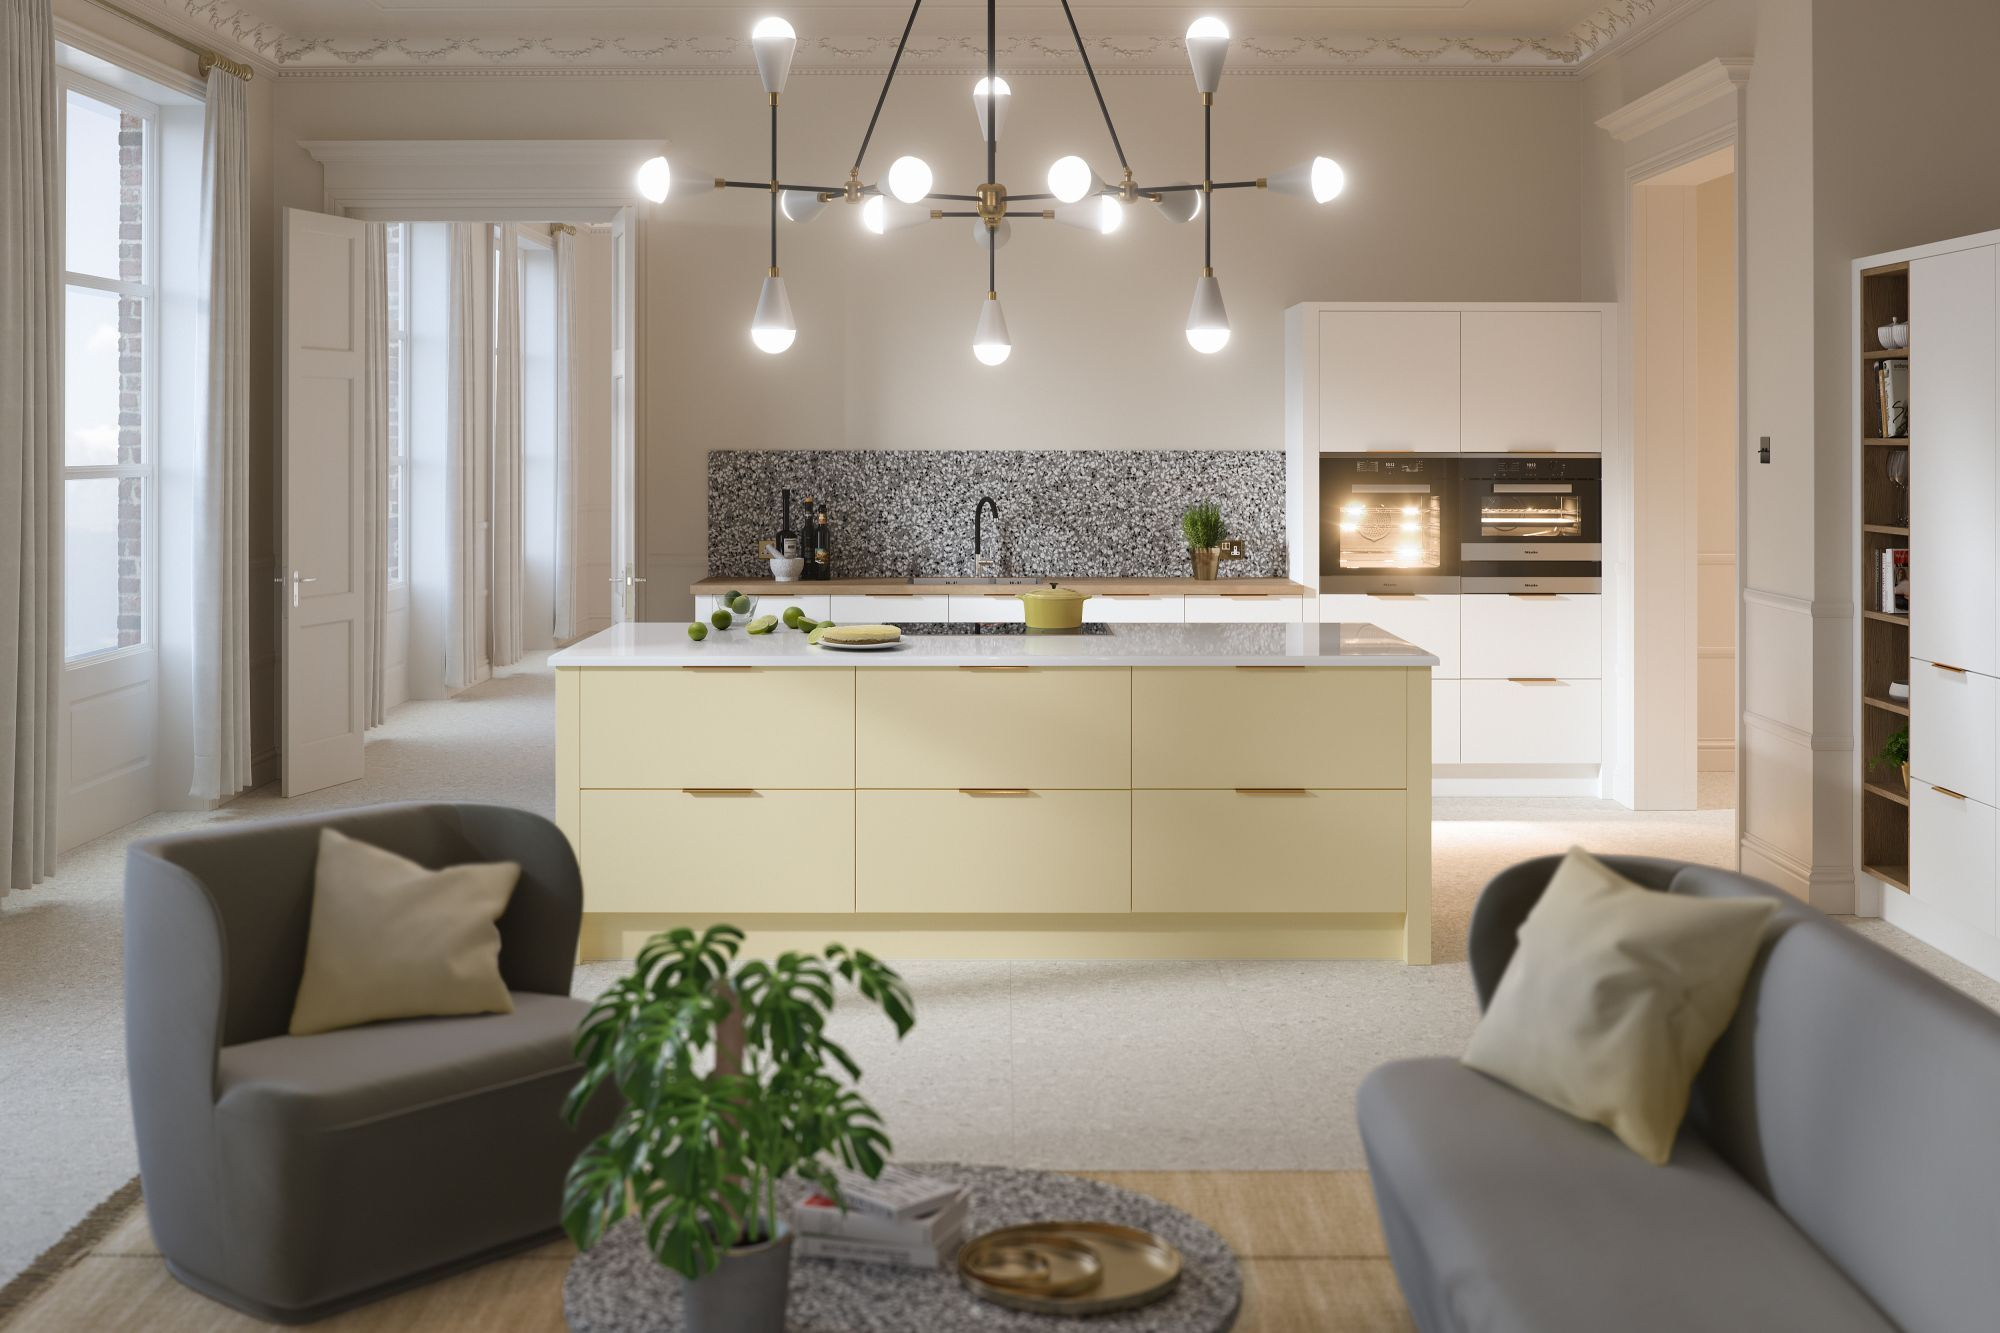 Latest Kitchen Design Trends 2019 (With images) Latest